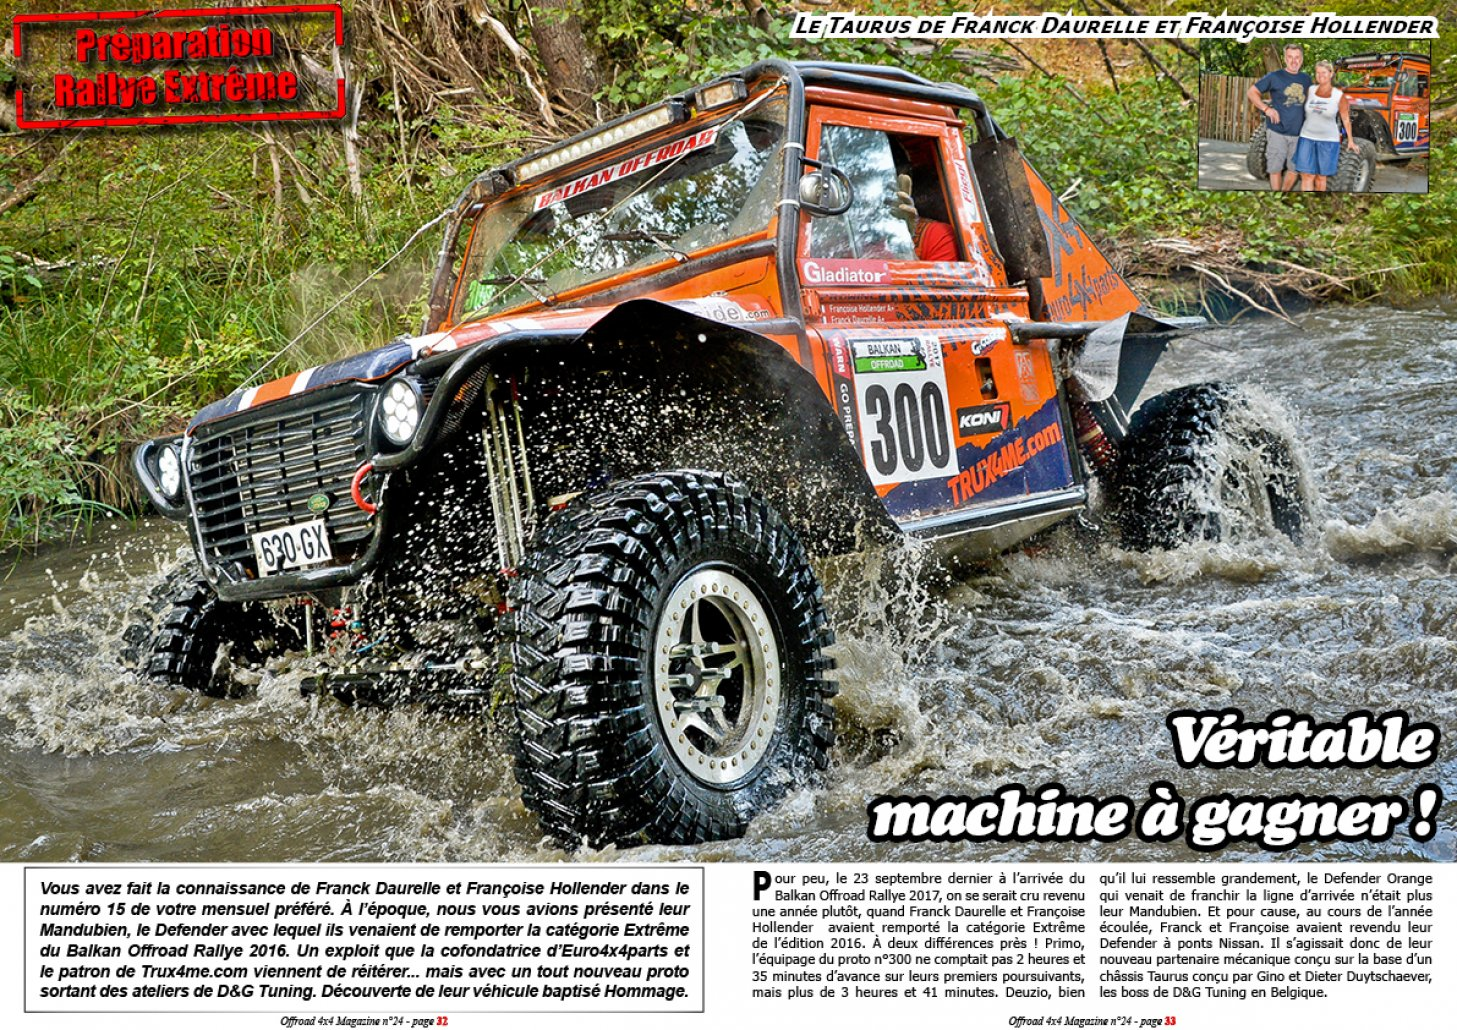 Le Taurus Hommage du team Euro4x4parts